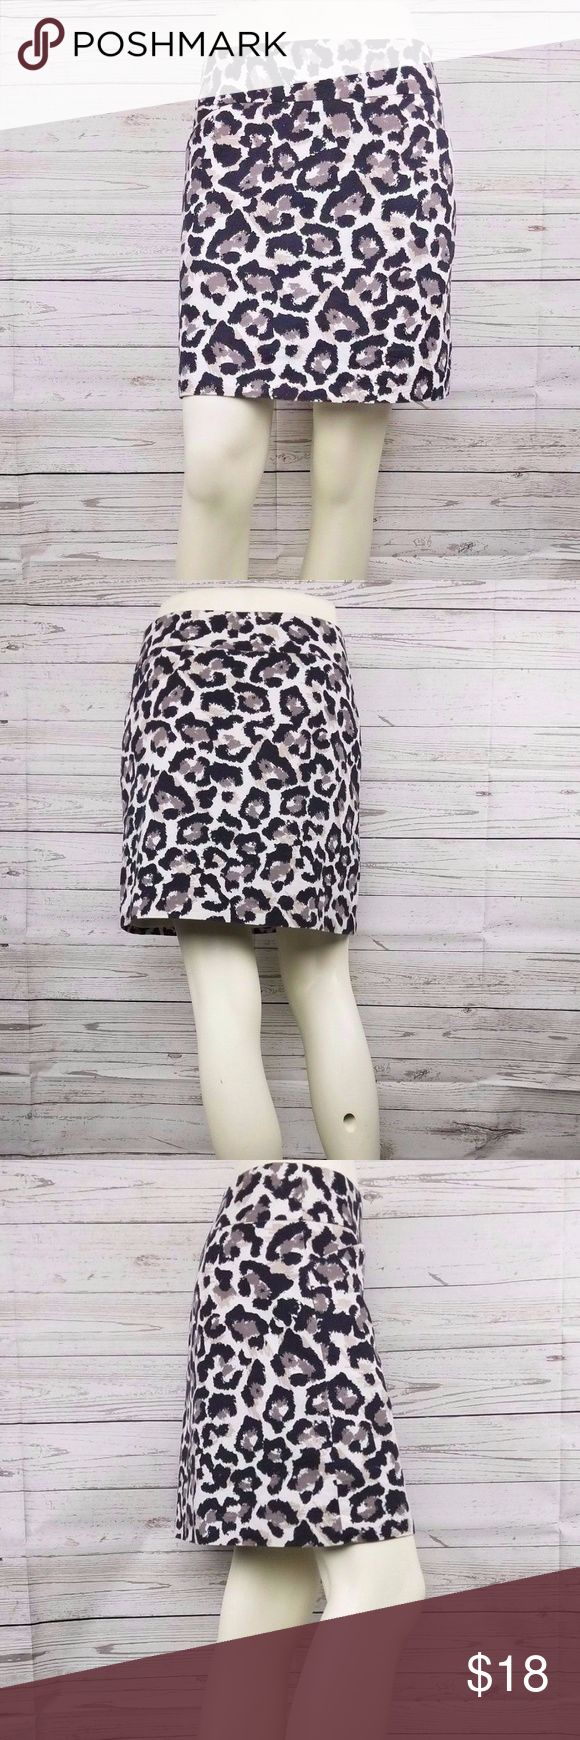 """Ann-Taylor LOFT Leopard Print Mini Skirt Size 0 Black Brown White  Leopard Print  A-Line Short Skirt - Women's Sz 0 Black, Browns, Beige Background - Animal Print   A-Line or Mini/Short Pencil (more of an A-line) Fully Lined Zips up on the Side  2 Front Pockets  Excellent Used Condition-Please see photos for best details Smoke and Pet free home  Measurements: Waist –30""""in Hips – 36"""" Length - 16 1/2""""  Material: 57% Cotton 42% Rayon 1% Spandex  160-285164 ID# 70026 Ann Taylor LOFT Skirts Mini"""